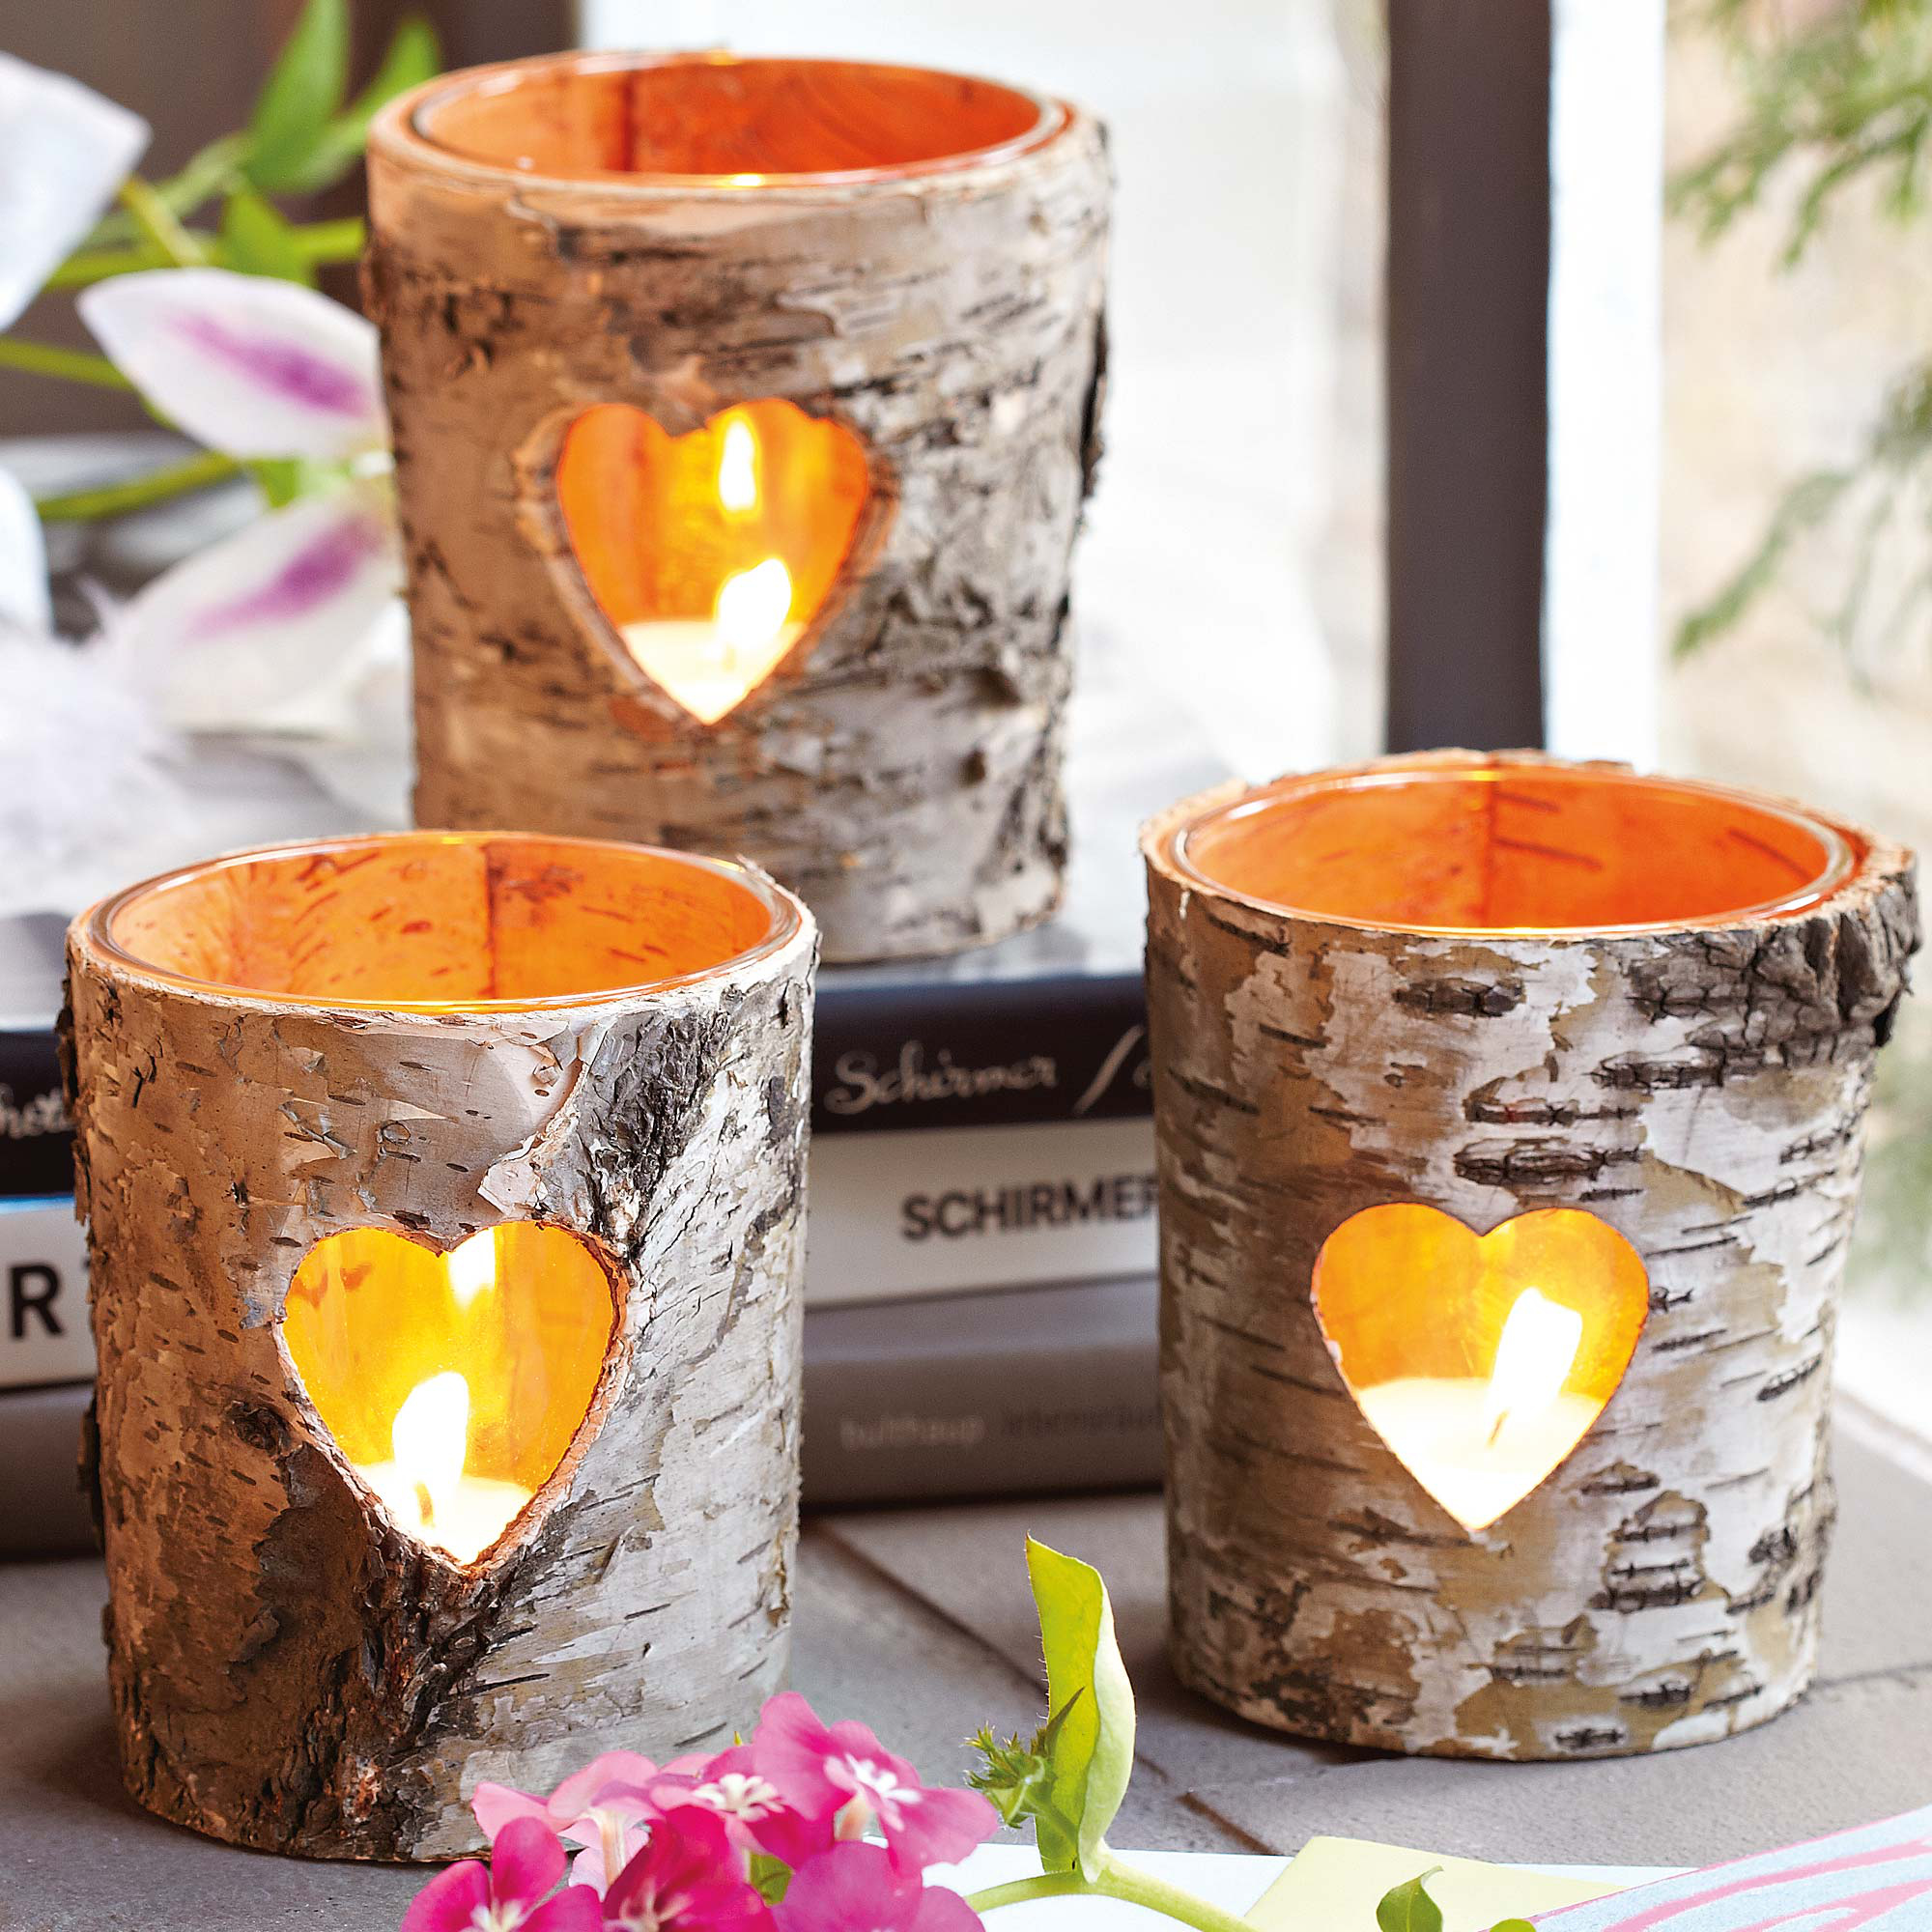 40 extremely clever diy candle holder projects for your home - Christmas Log Candle Holder Decorations